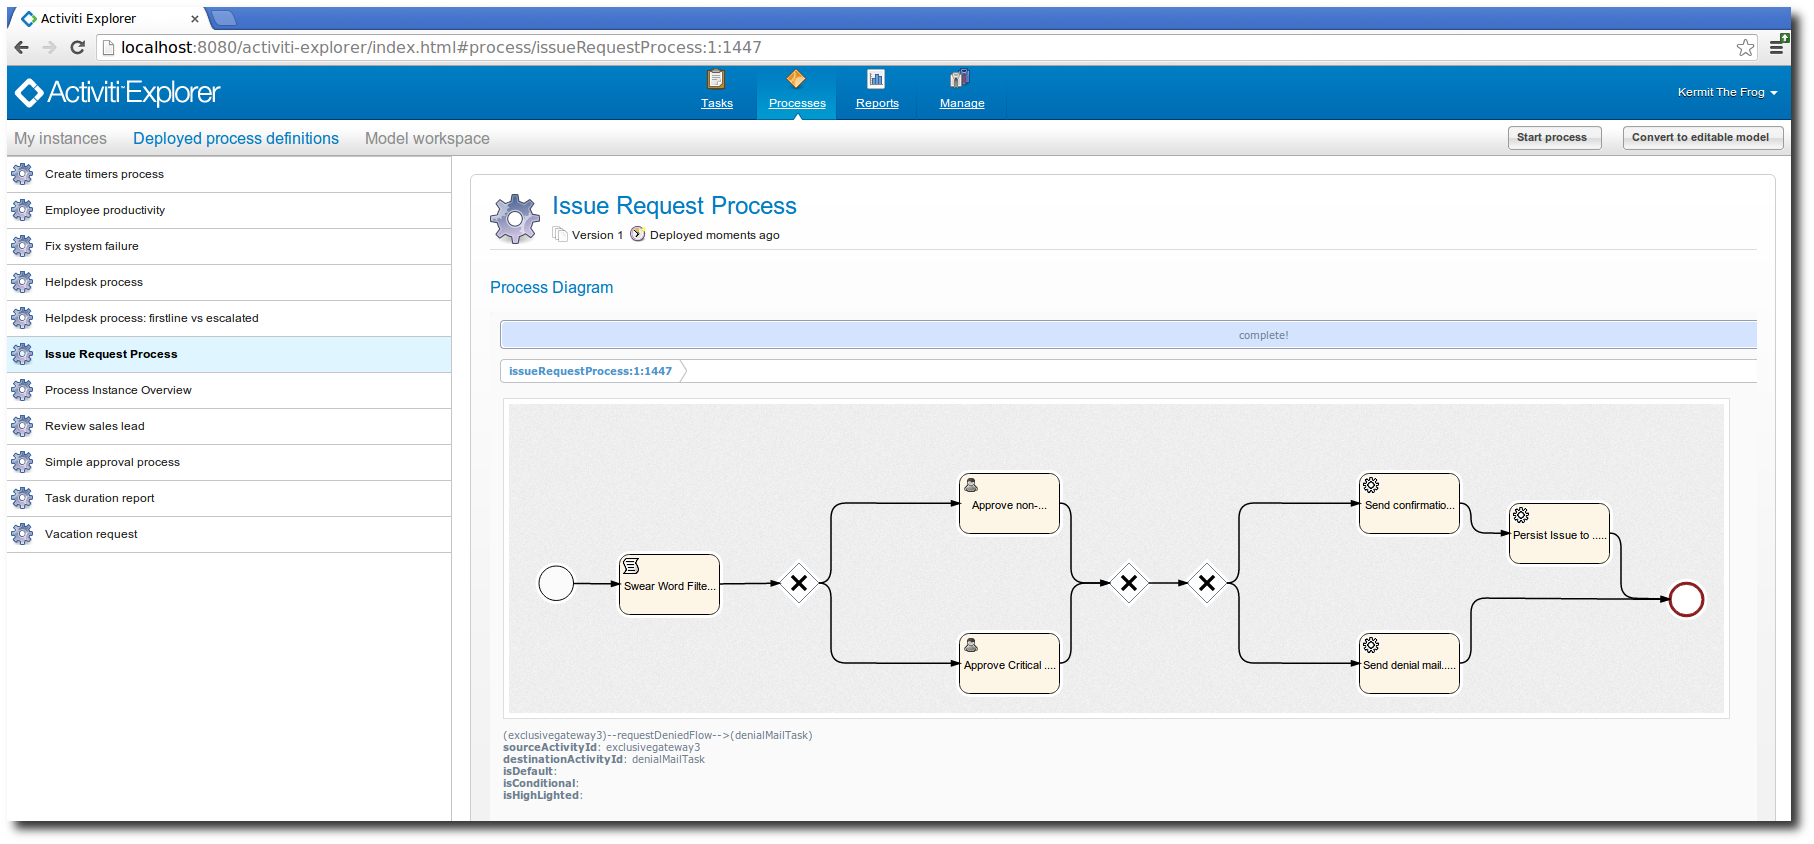 hasCode com » Blog Archive » Business Process Modeling with Activiti